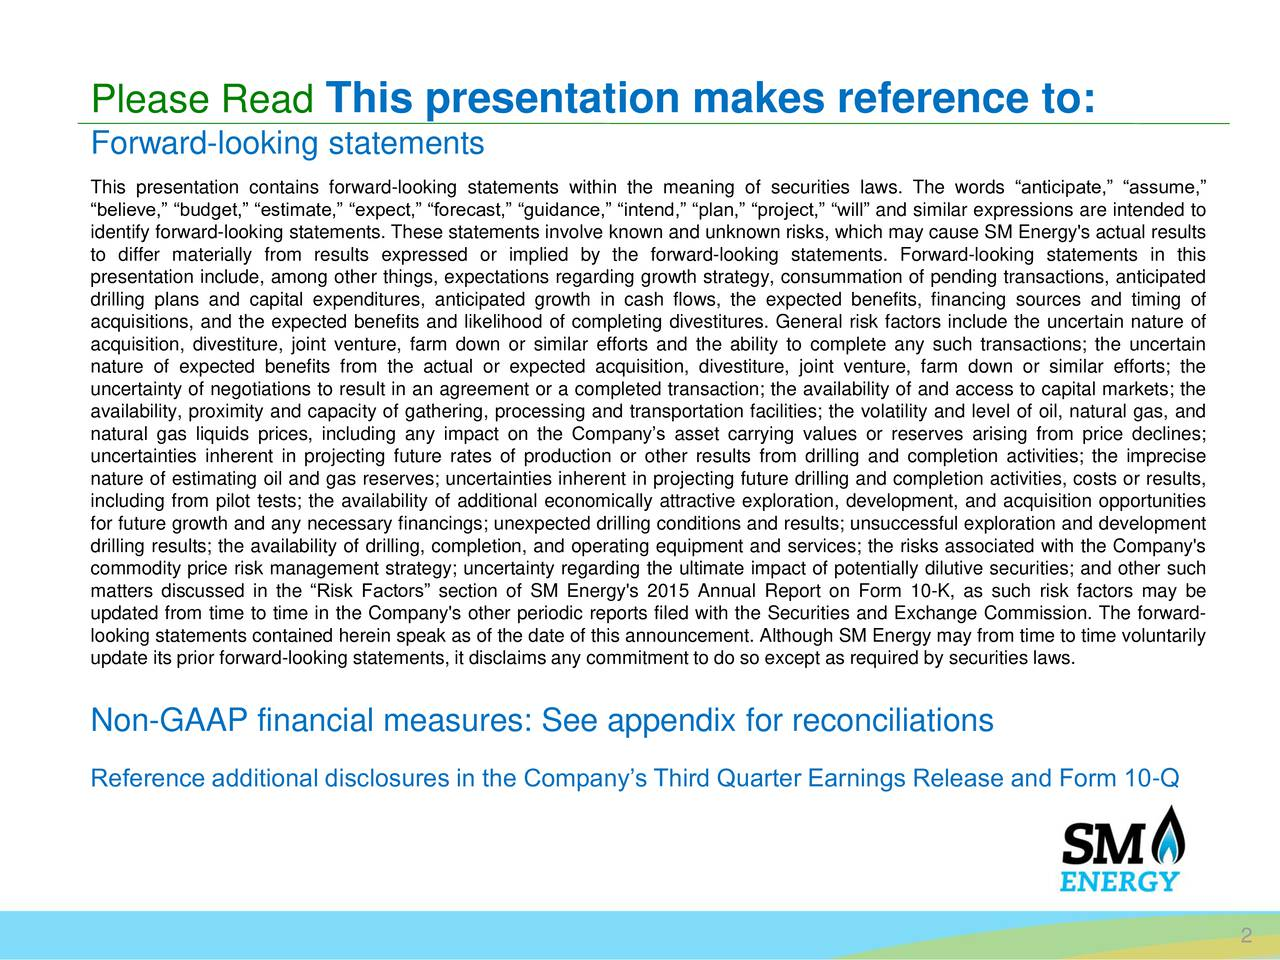 Forward-looking statements This presentation contains forward-looking statements within the meaning of securities laws. The words anticipate, assume, believe, budget, estimate, expect, forecast, guidance, intend, plan, project, will and similar expressions are intended to identify forward-looking statements. These statements involve known and unknown risks, which may cause SM Energy's actual results to differ materially from results expressed or implied by the forward-looking statements. Forward-looking statements in this presentation include, among other things, expectations regarding growth strategy, consummation of pending transactions, anticipated drilling plans and capital expenditures, anticipated growth in cash flows, the expected benefits, financing sources and timing of acquisitions, and the expected benefits and likelihood of completing divestitures. General risk factors include the uncertain nature of acquisition, divestiture, joint venture, farm down or similar efforts and the ability to complete any such transactions; the uncertain nature of expected benefits from the actual or expected acquisition, divestiture, joint venture, farm down or similar efforts; the uncertainty of negotiations to result in an agreement or a completed transaction; the availability of and access to capital markets; the availability, proximity and capacity of gathering, processing and transportation facilities; the volatility and level of oil, natural gas, and natural gas liquids prices, including any impact on the Companys asset carrying values or reserves arising from price declines; uncertainties inherent in projecting future rates of production or other results from drilling and completion activities; the imprecise nature of estimating oil and gas reserves; uncertainties inherent in projecting future drilling and completion activities, costs or results, including from pilot tests; the availability of additional economically attractive exploration, development, and acquisition opportunities for future growth and any necessary financings; unexpected drilling conditions and results; unsuccessful exploration and development drilling results; the availability of drilling, completion, and operating equipment and services; the risks associated with the Company's commodity price risk management strategy; uncertainty regarding the ultimate impact of potentially dilutive securities; and other such matters discussed in the Risk Factors section of SM Energy's 2015 Annual Report on Form 10-K, as such risk factors may be updated from time to time in the Company's other periodic reports filed with the Securities and Exchange Commission. The forward- looking statements contained herein speak as of the date of this announcement. Although SM Energy may from time to time voluntarily update its prior forward-looking statements, it disclaims any commitment to do so except as required by securities laws. Non-GAAP financial measures: See appendix for reconciliations Reference additional disclosures in the Companys Third Quarter Earnings Release and Form 10-Q 2